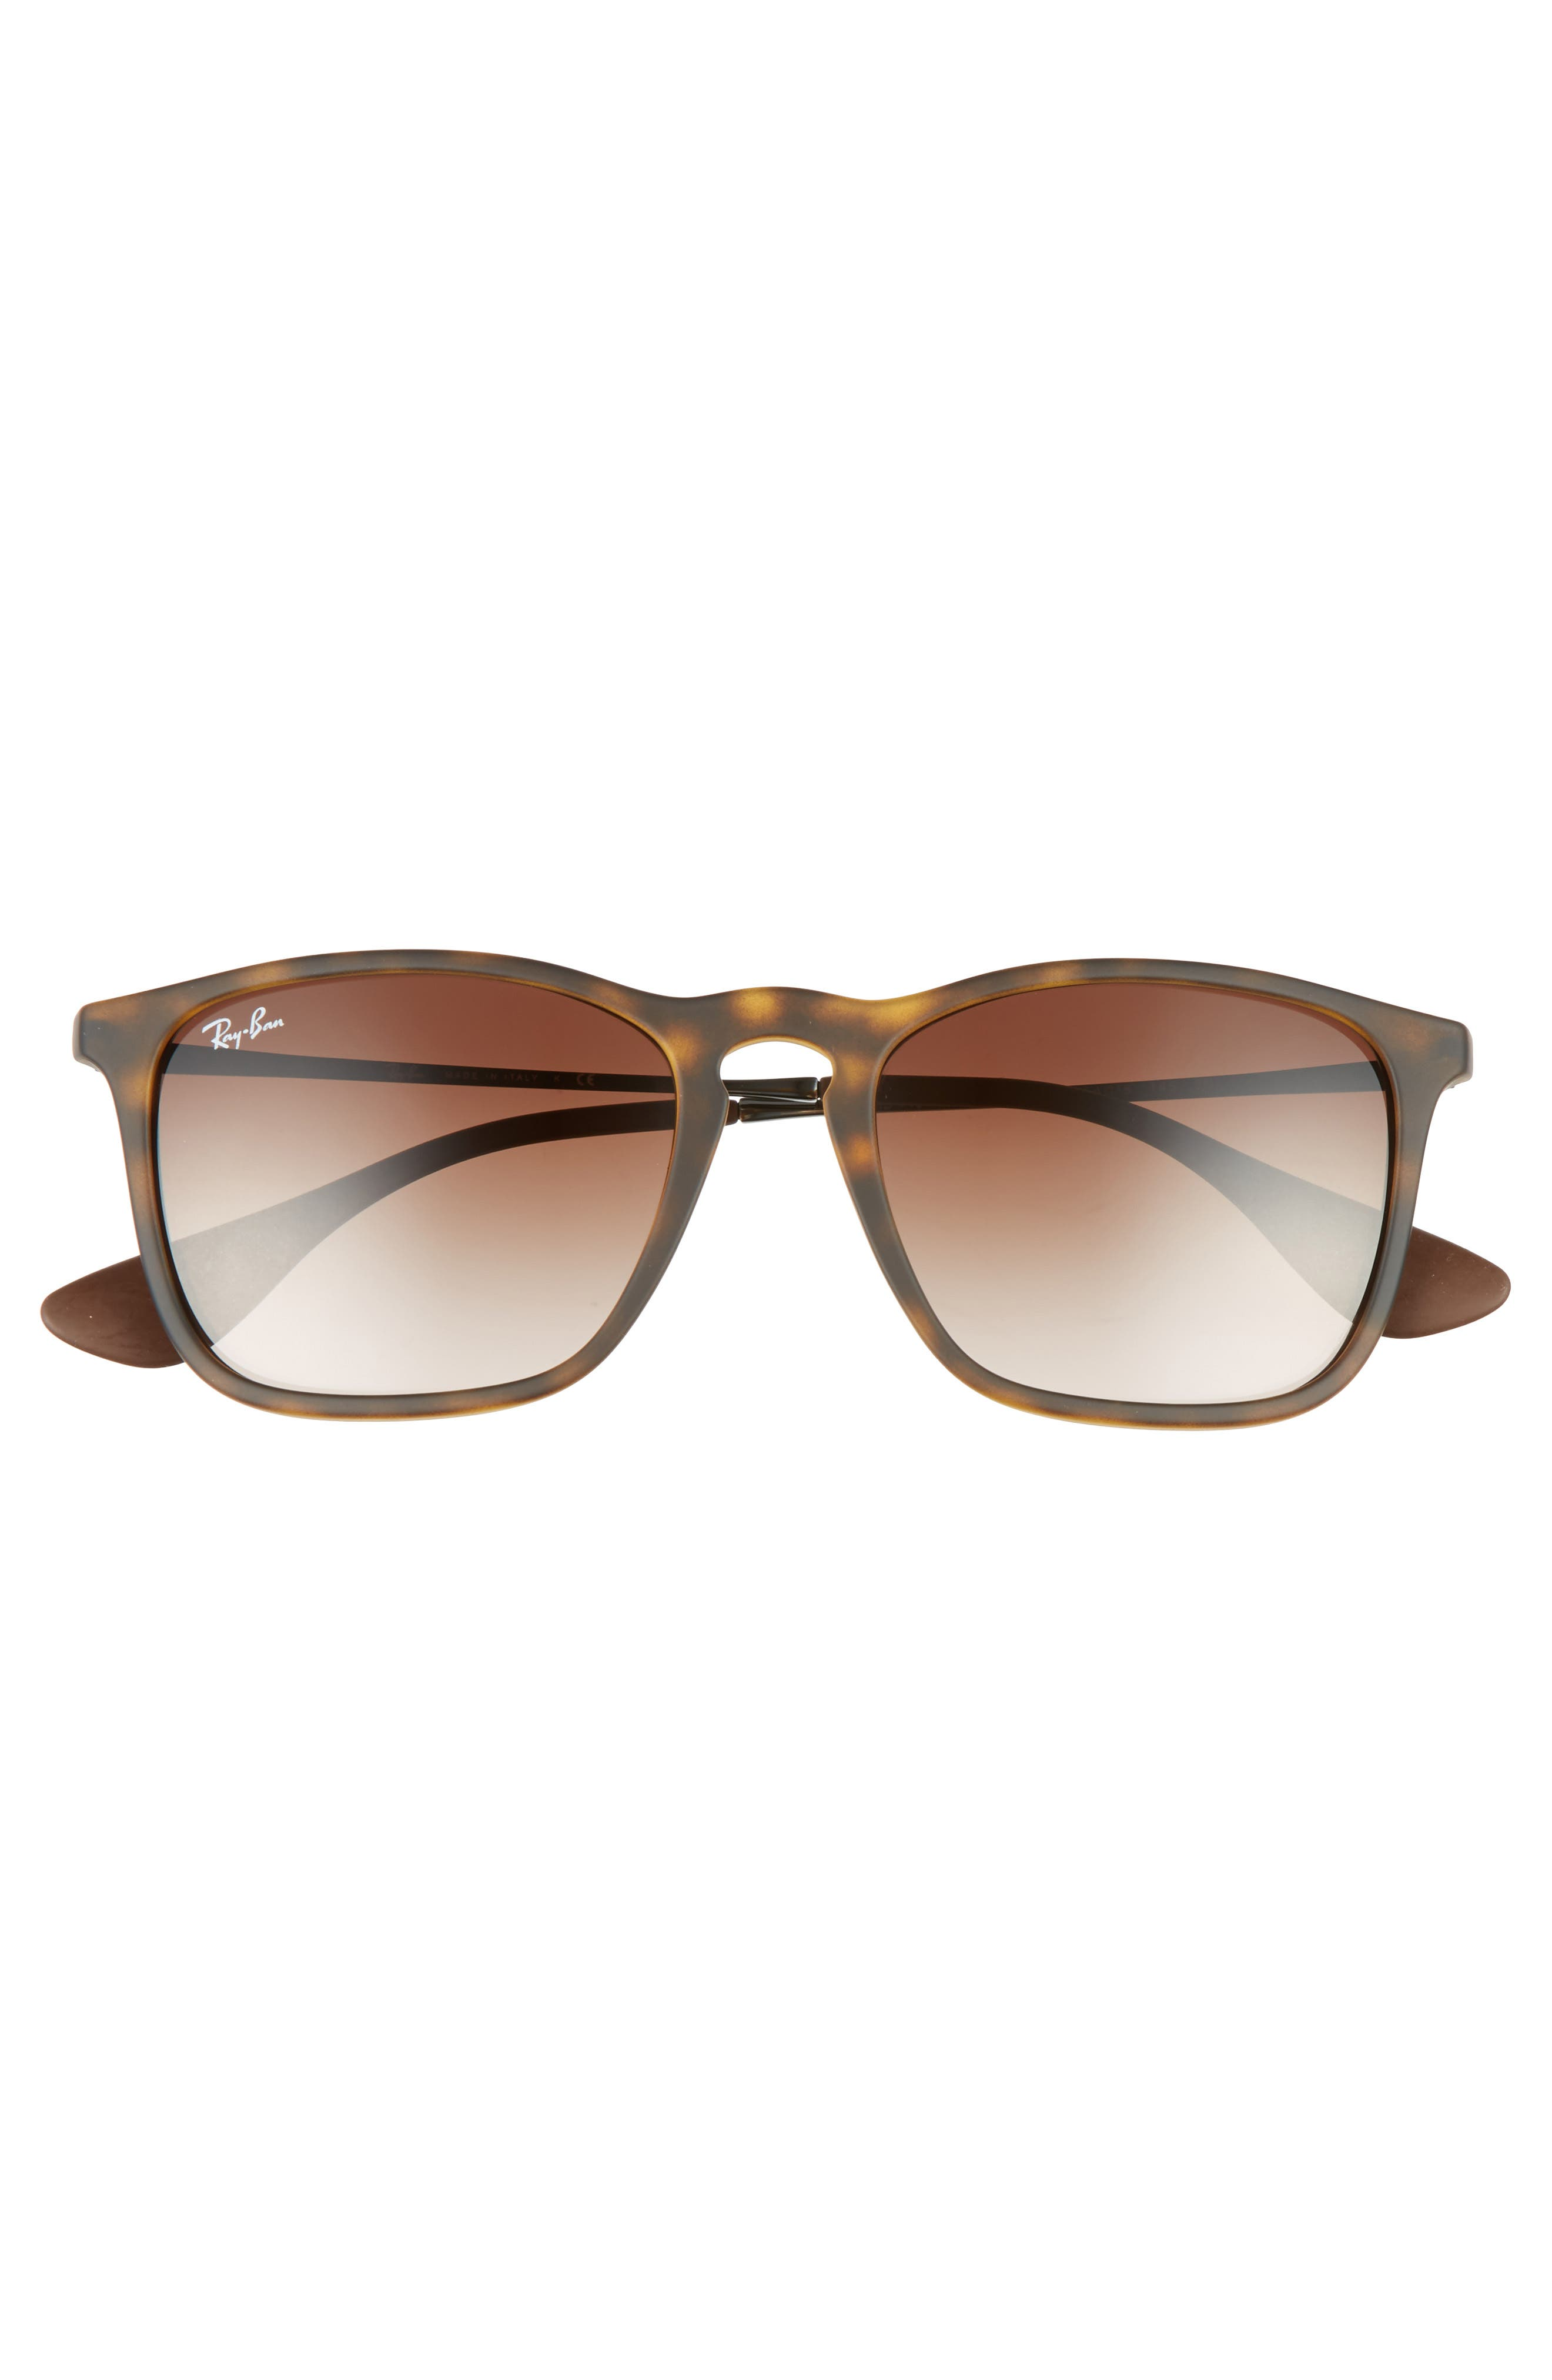 Youngster 54mm Square Keyhole Sunglasses,                             Alternate thumbnail 3, color,                             BROWN